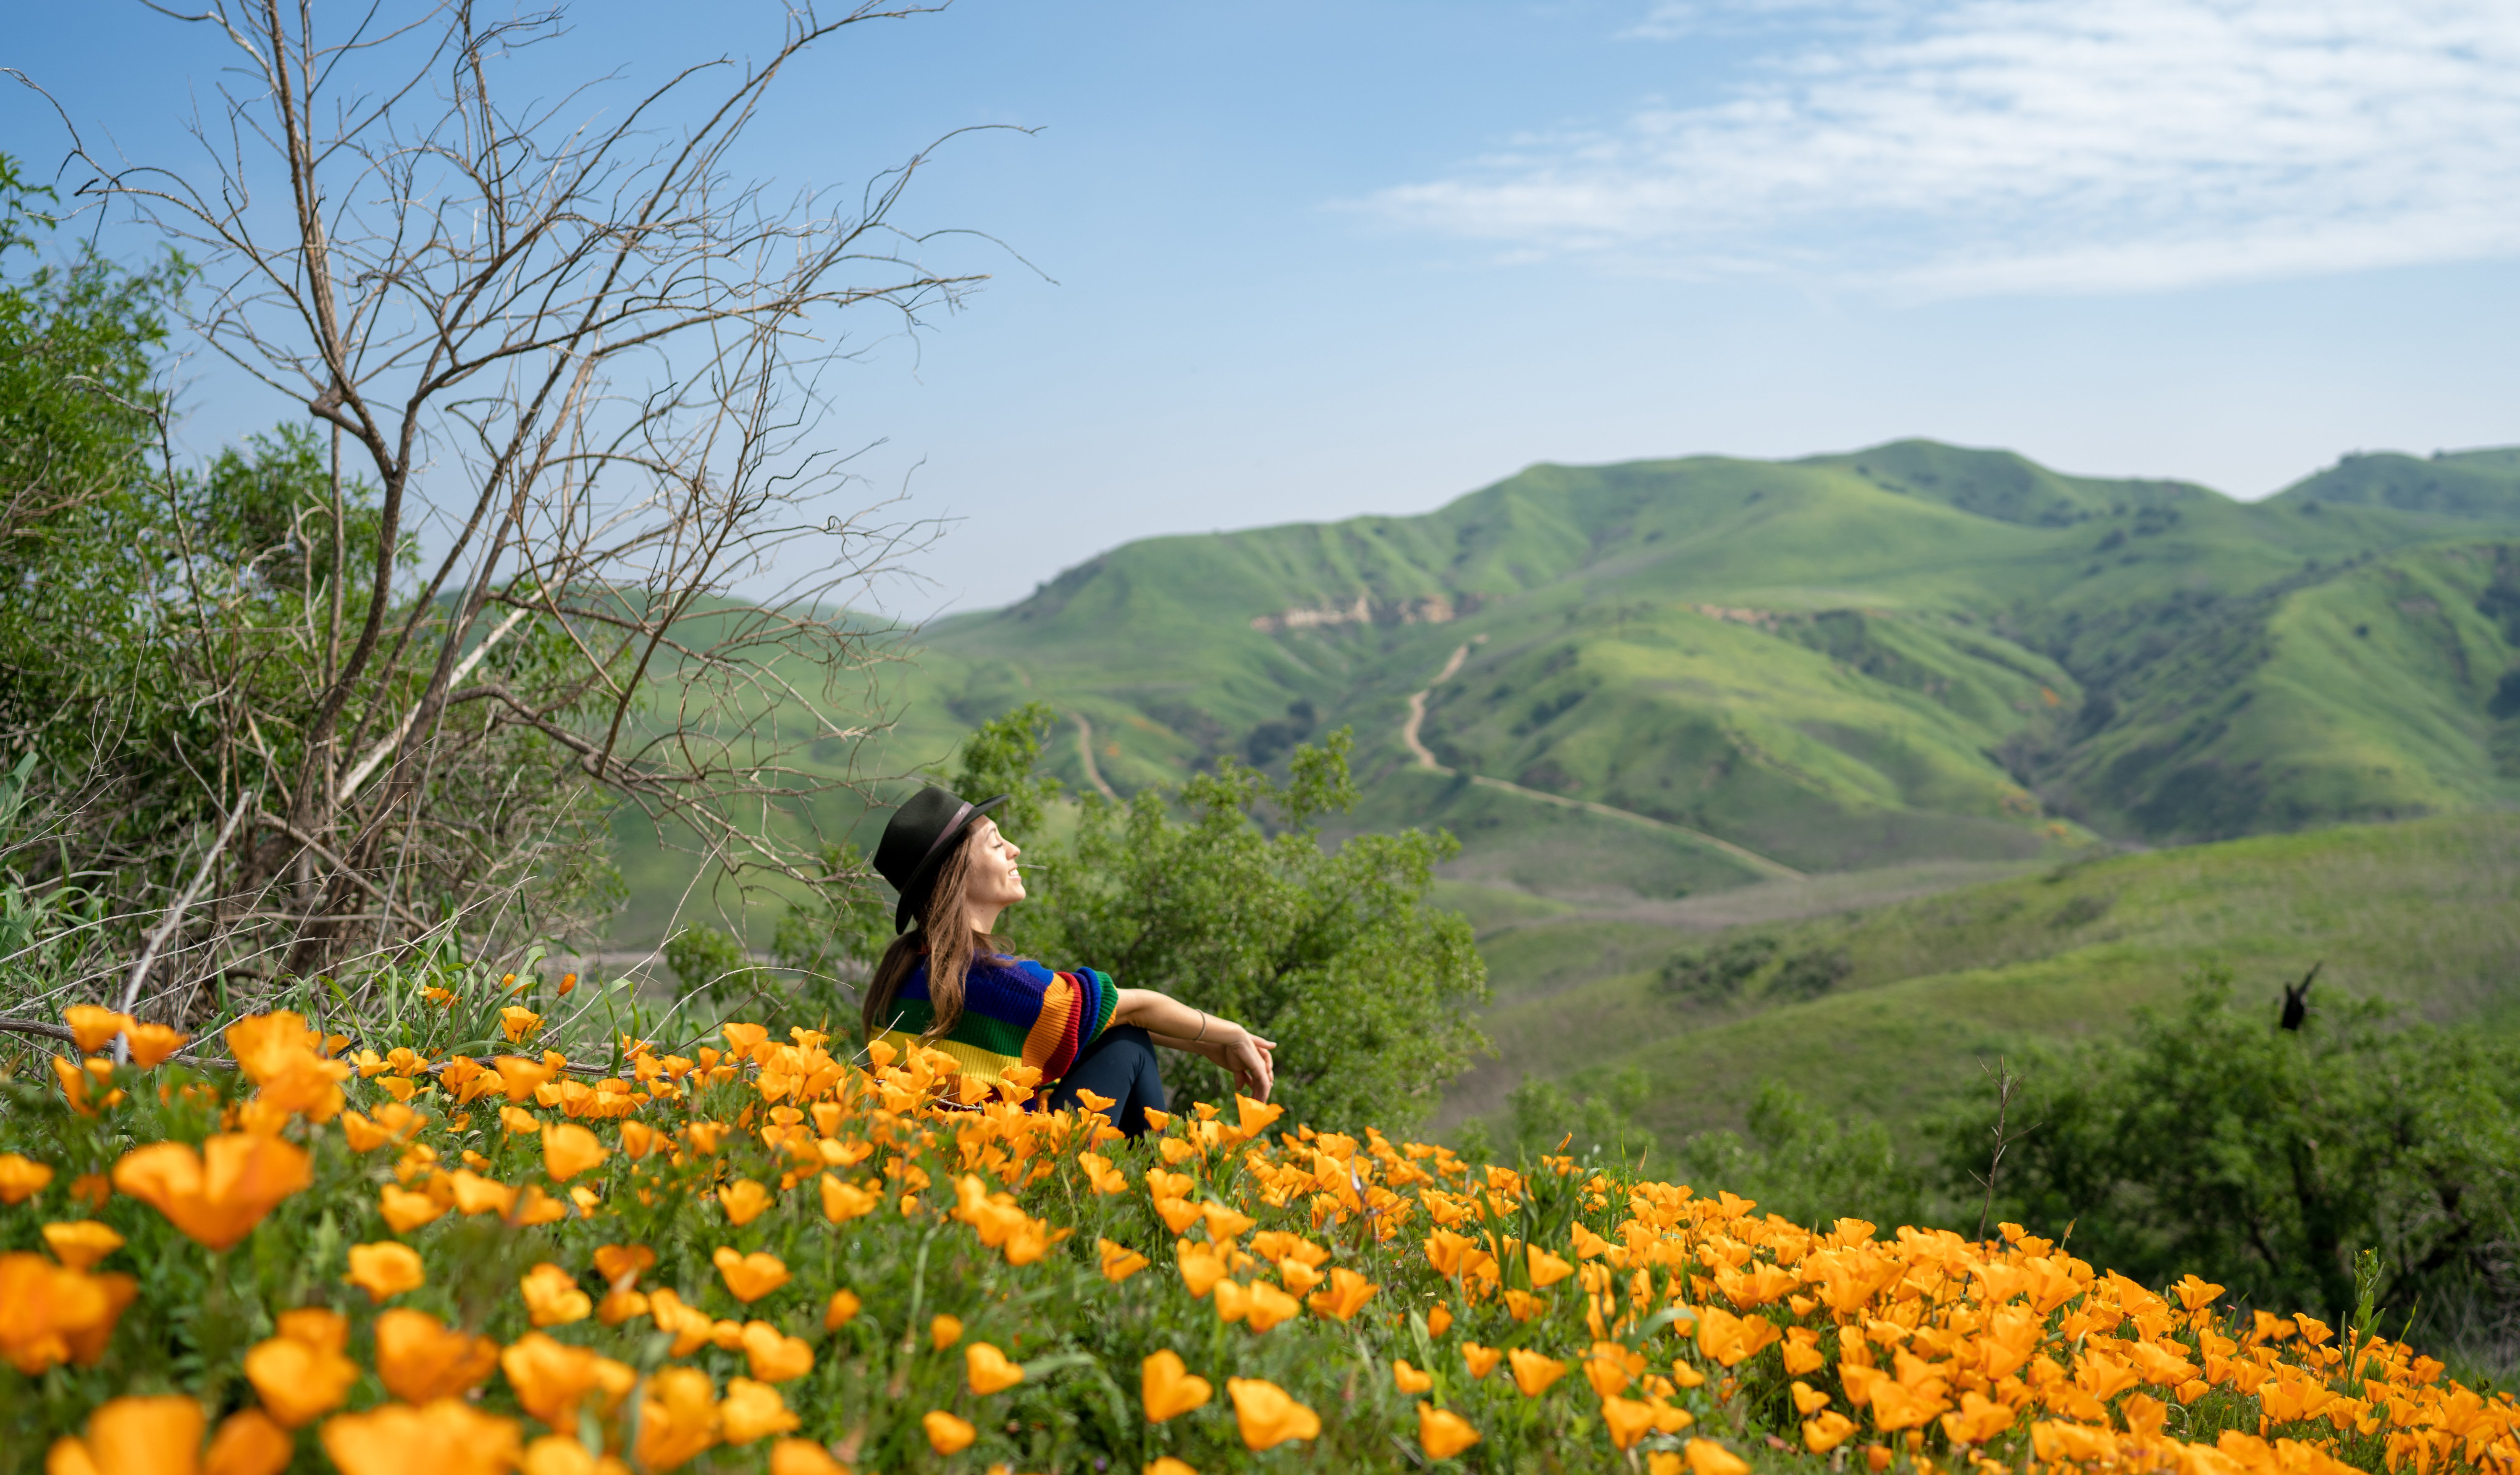 Kristin Addis sitting in a bed of sunflowers against a mountain backdrop